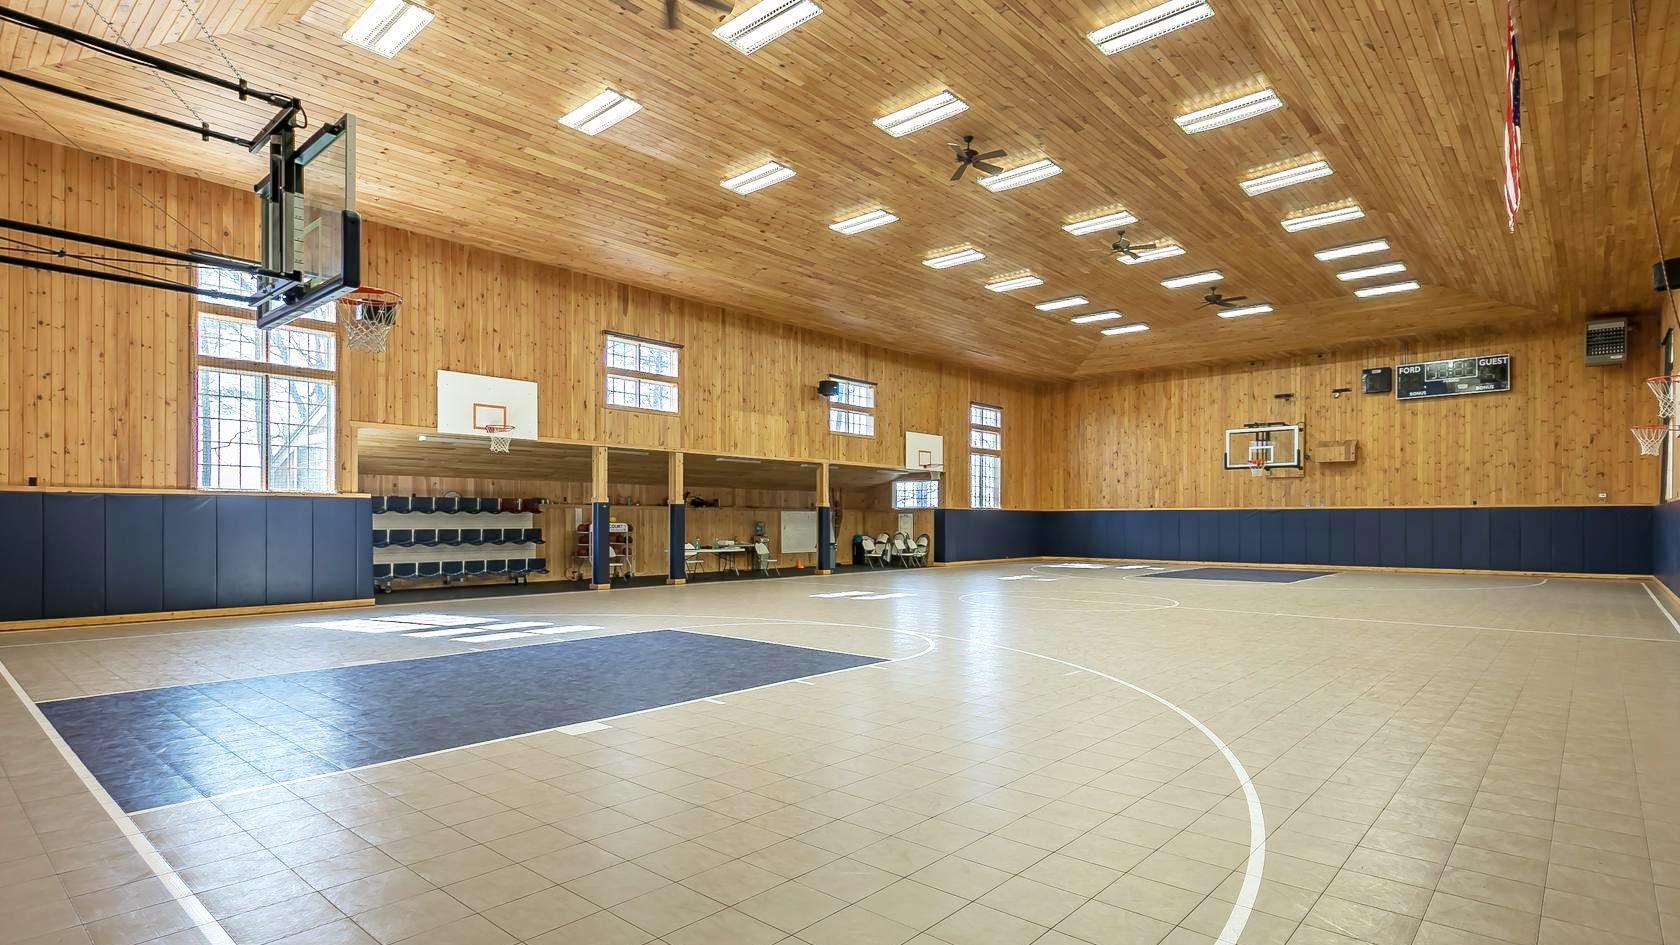 Live Like A Baller In These 7 Homes With Indoor Basketball Courts Indoor Basketball Court Home Basketball Court Indoor Basketball